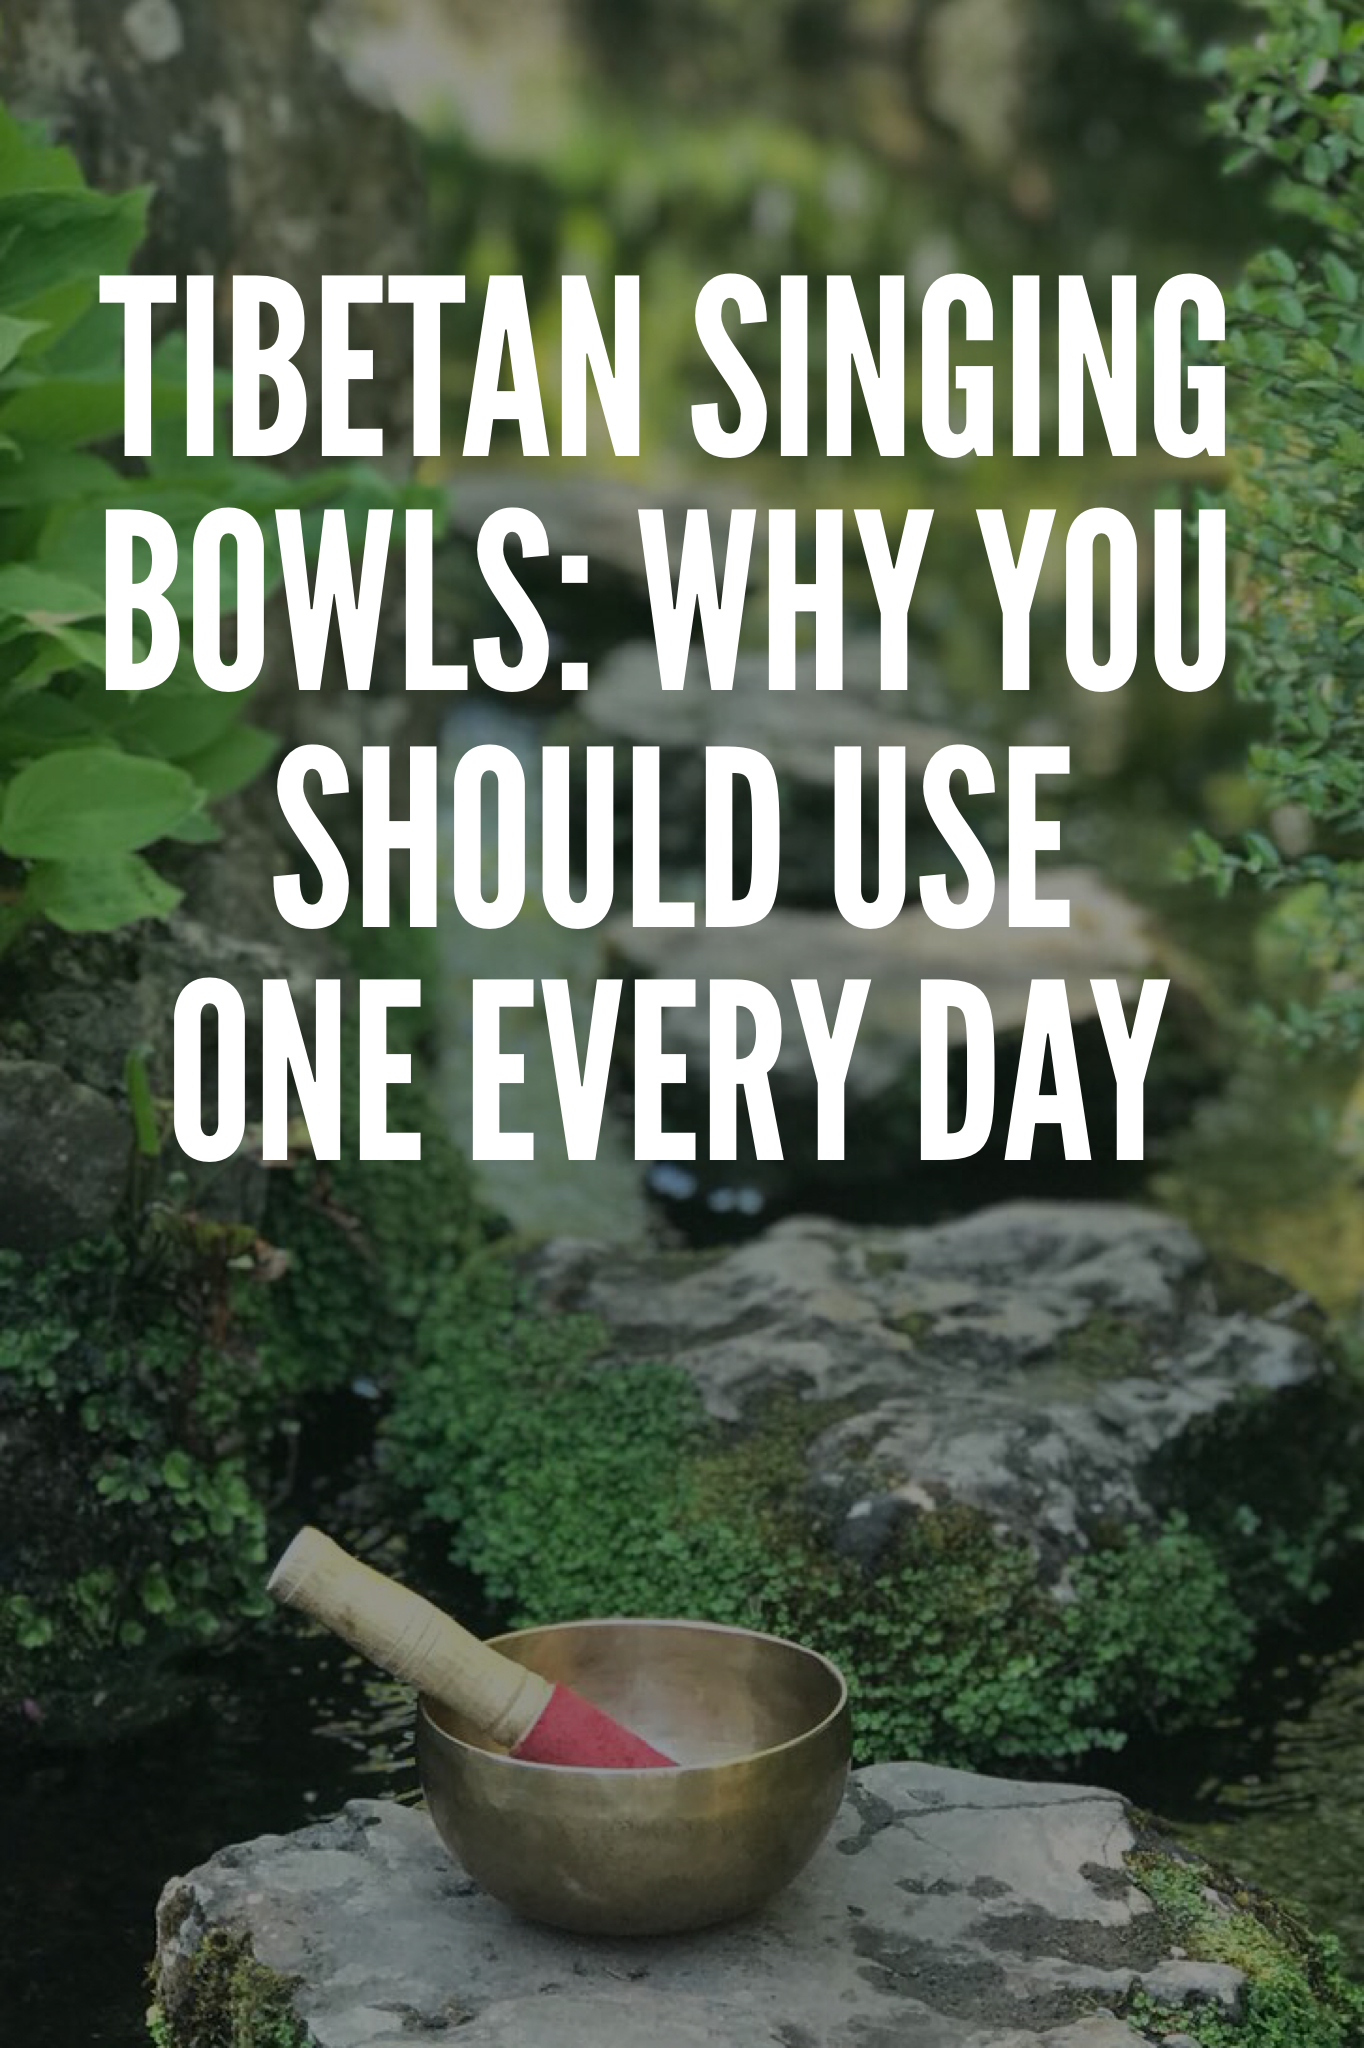 Tibetan Singing Bowls Why You Should Use One Every Day Singing Bowls Tibetan Singing Bowls Meditation Music